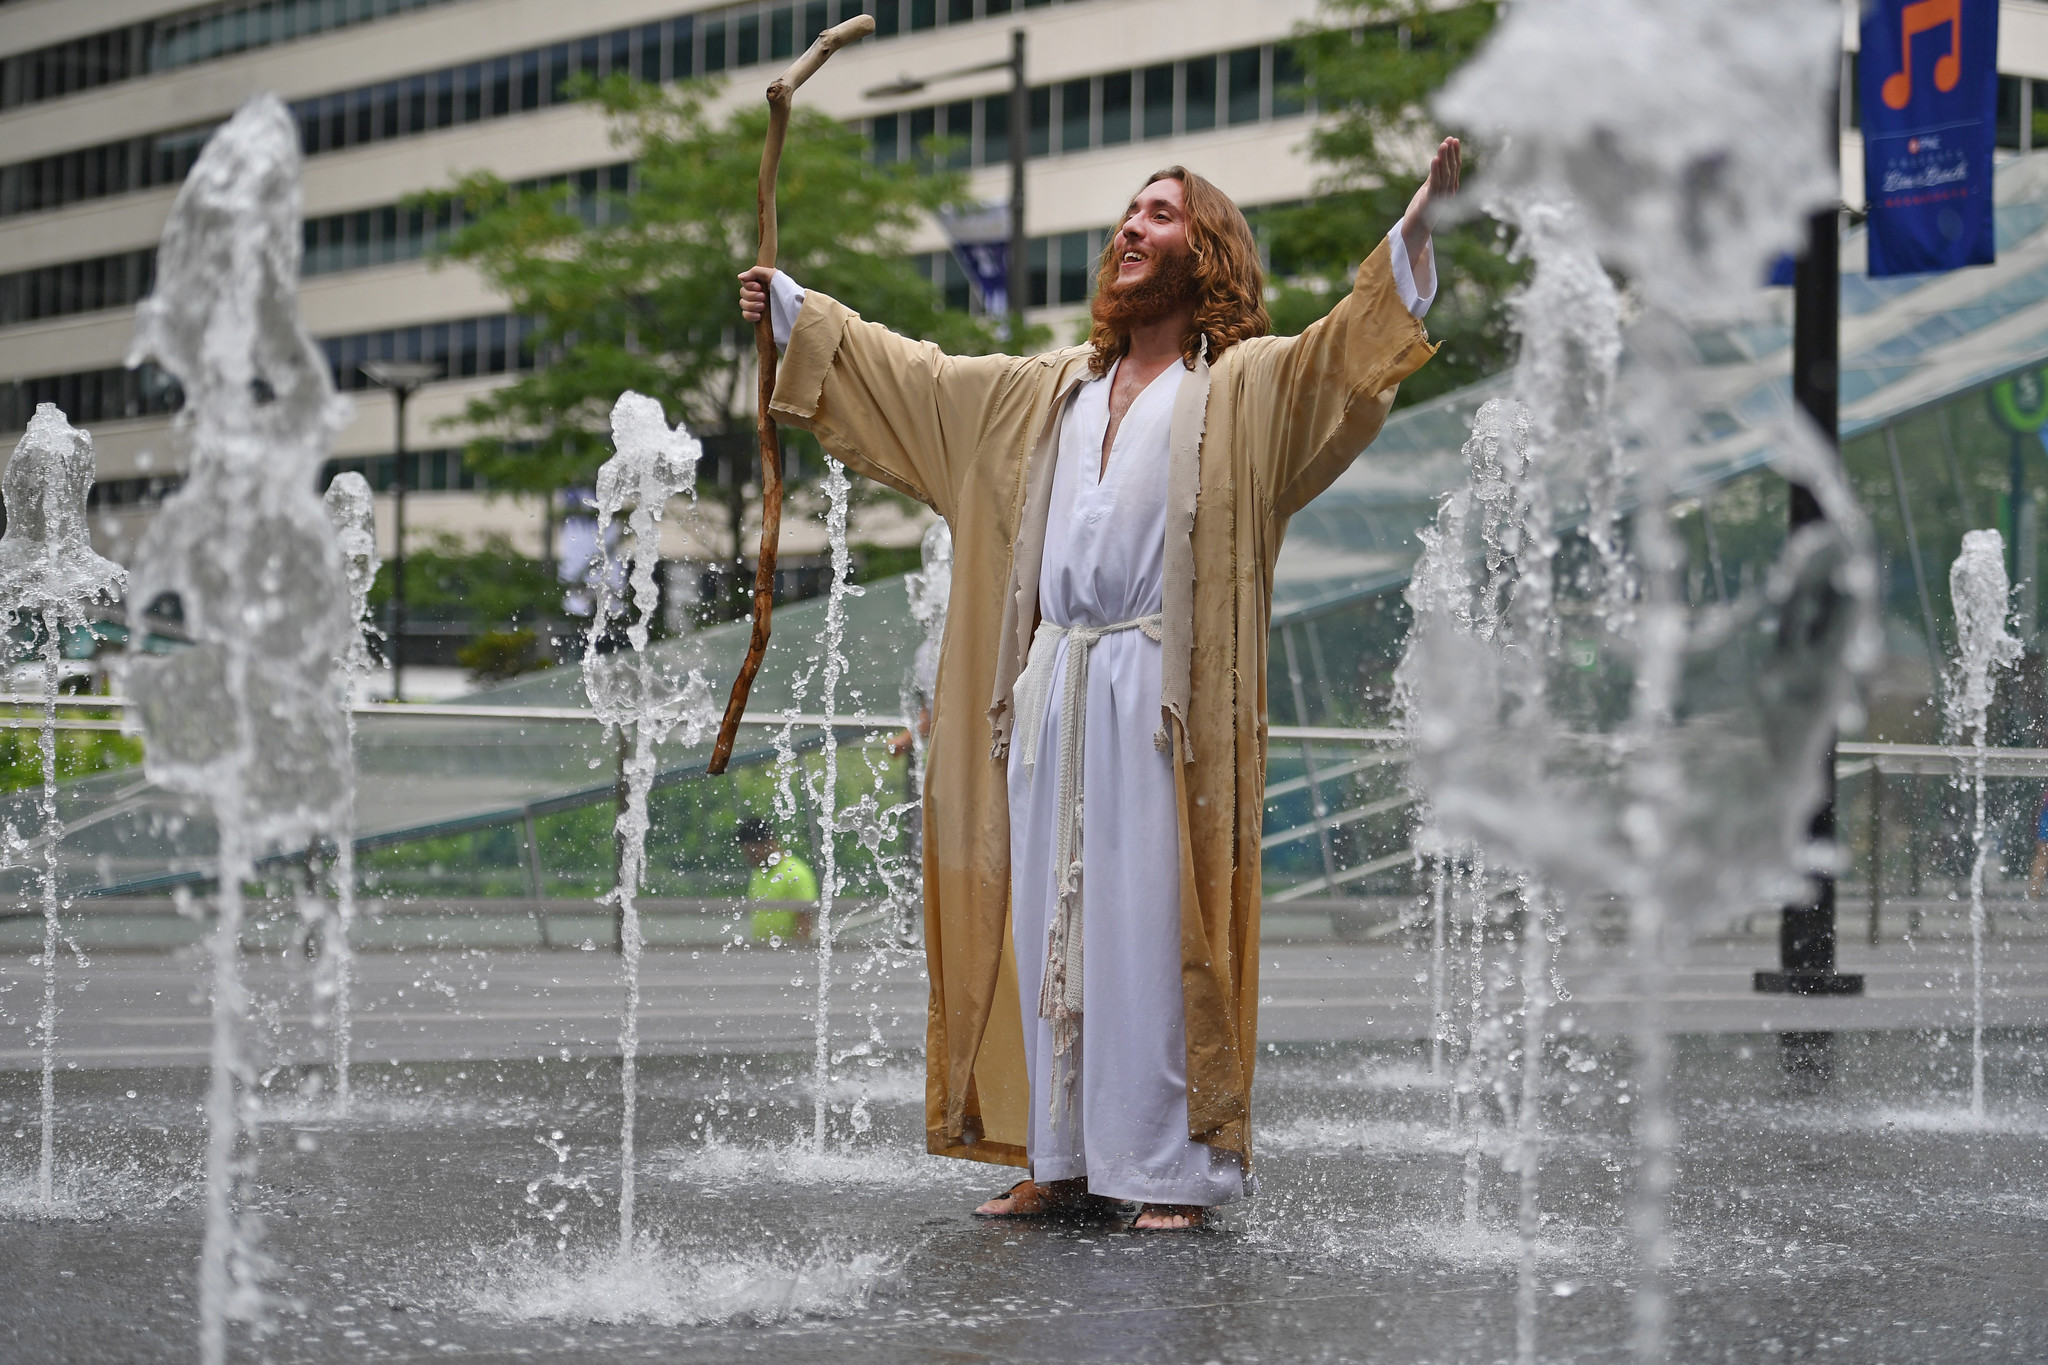 Cops refuse to forgive Philly Jesus his trespass at church